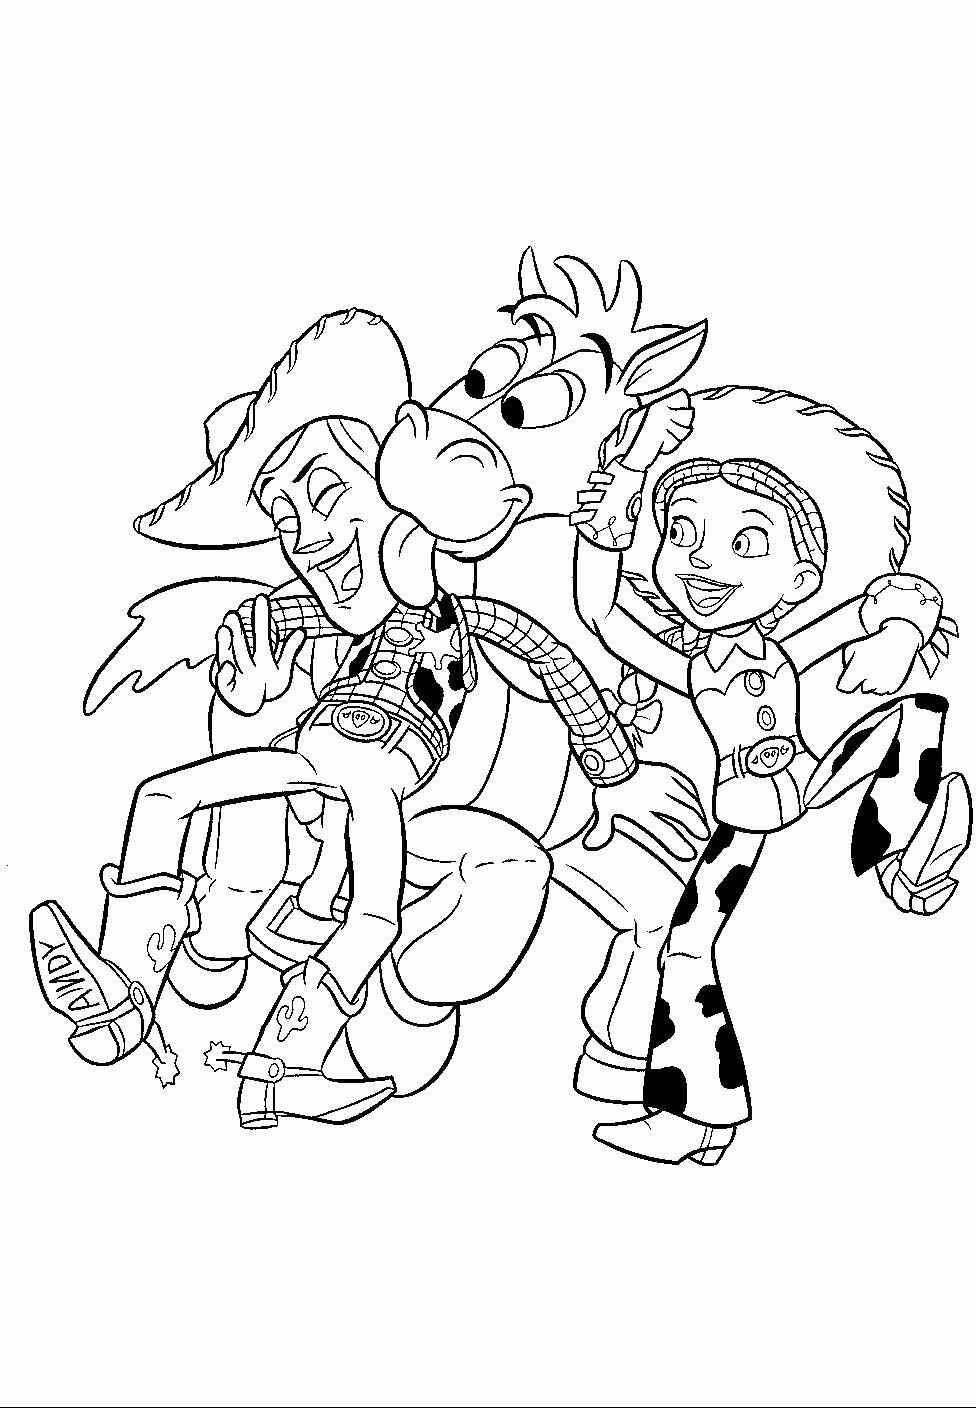 Toy Story Coloring Page Elegant Toy Story Coloring Page In 2020 Toy Story Coloring Pages Disney Coloring Pages Coloring Pages